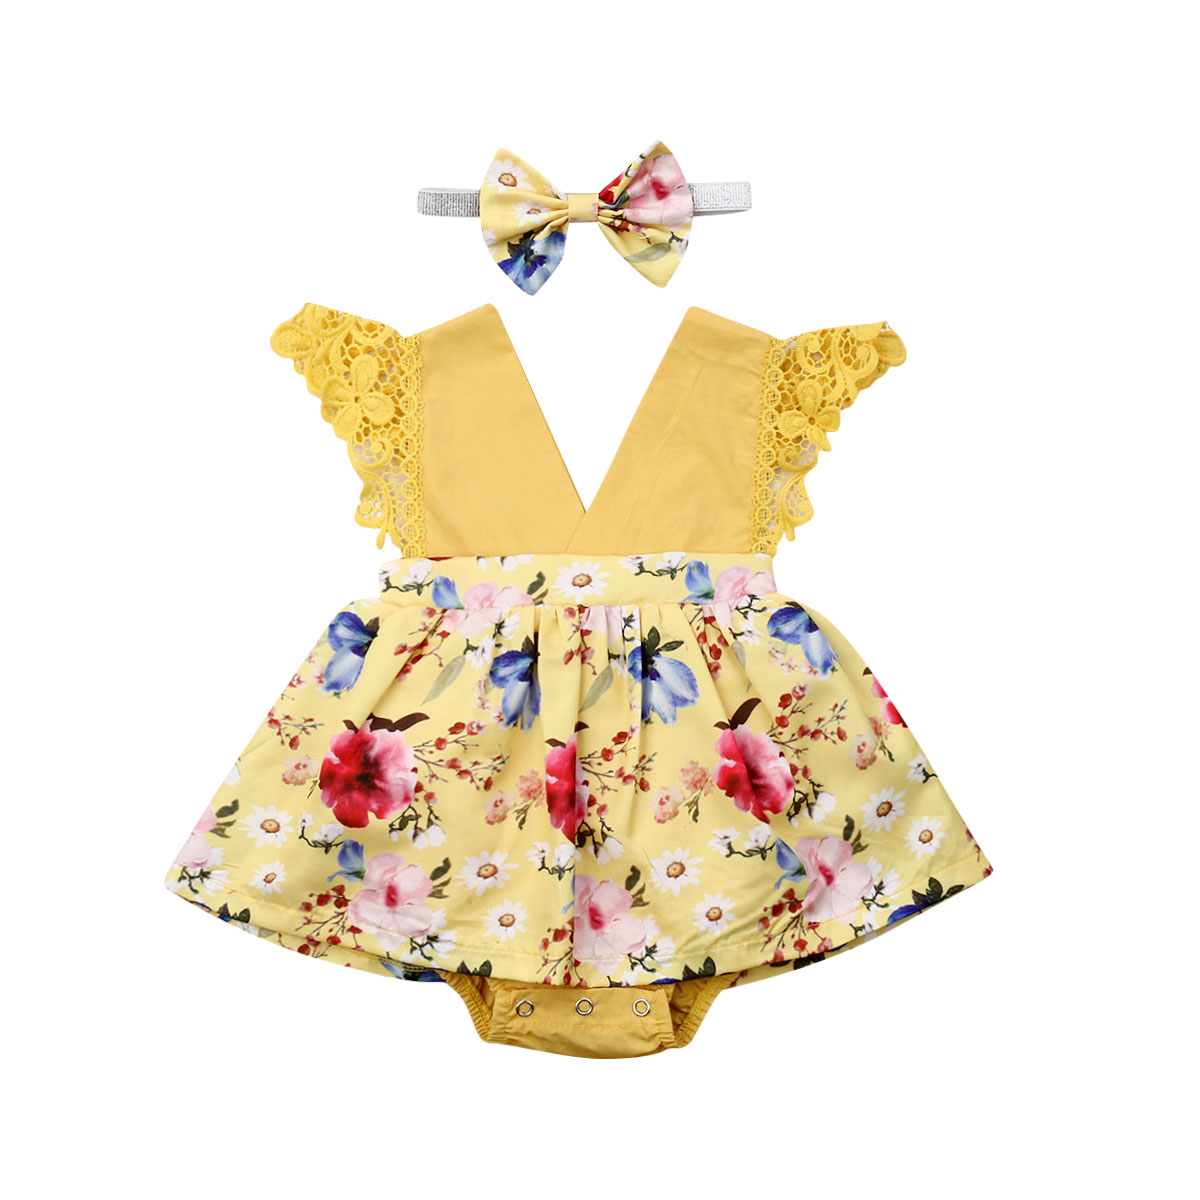 0-24M Newborn Baby Girls Ruffles Rompers Flower Lace Jumpsuit  V neck Girls Costumes Summer Cute Baby Clothes